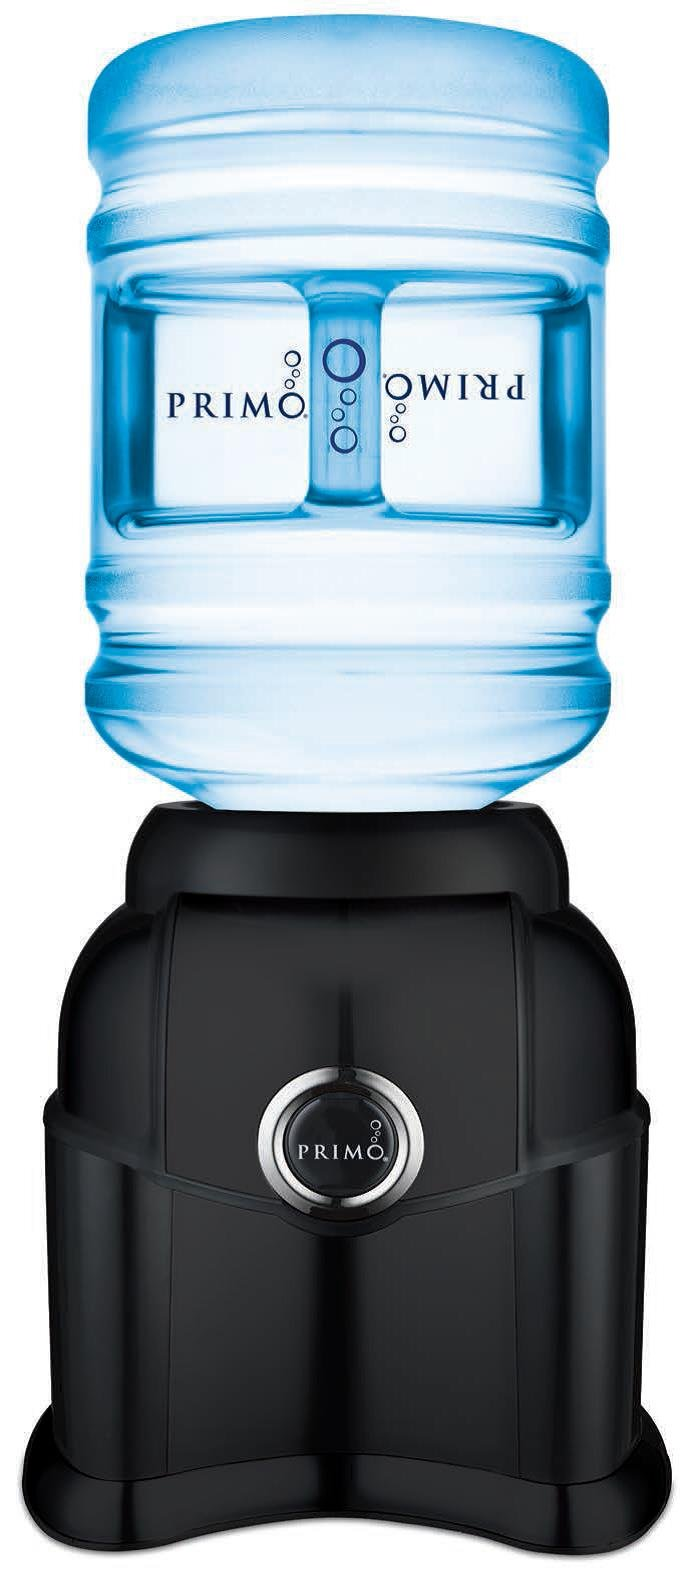 Primo Top Loading Countertop Water Dispenser - Room Temperature - Supports 3 or 5 Gallon Water Jugs [Black]